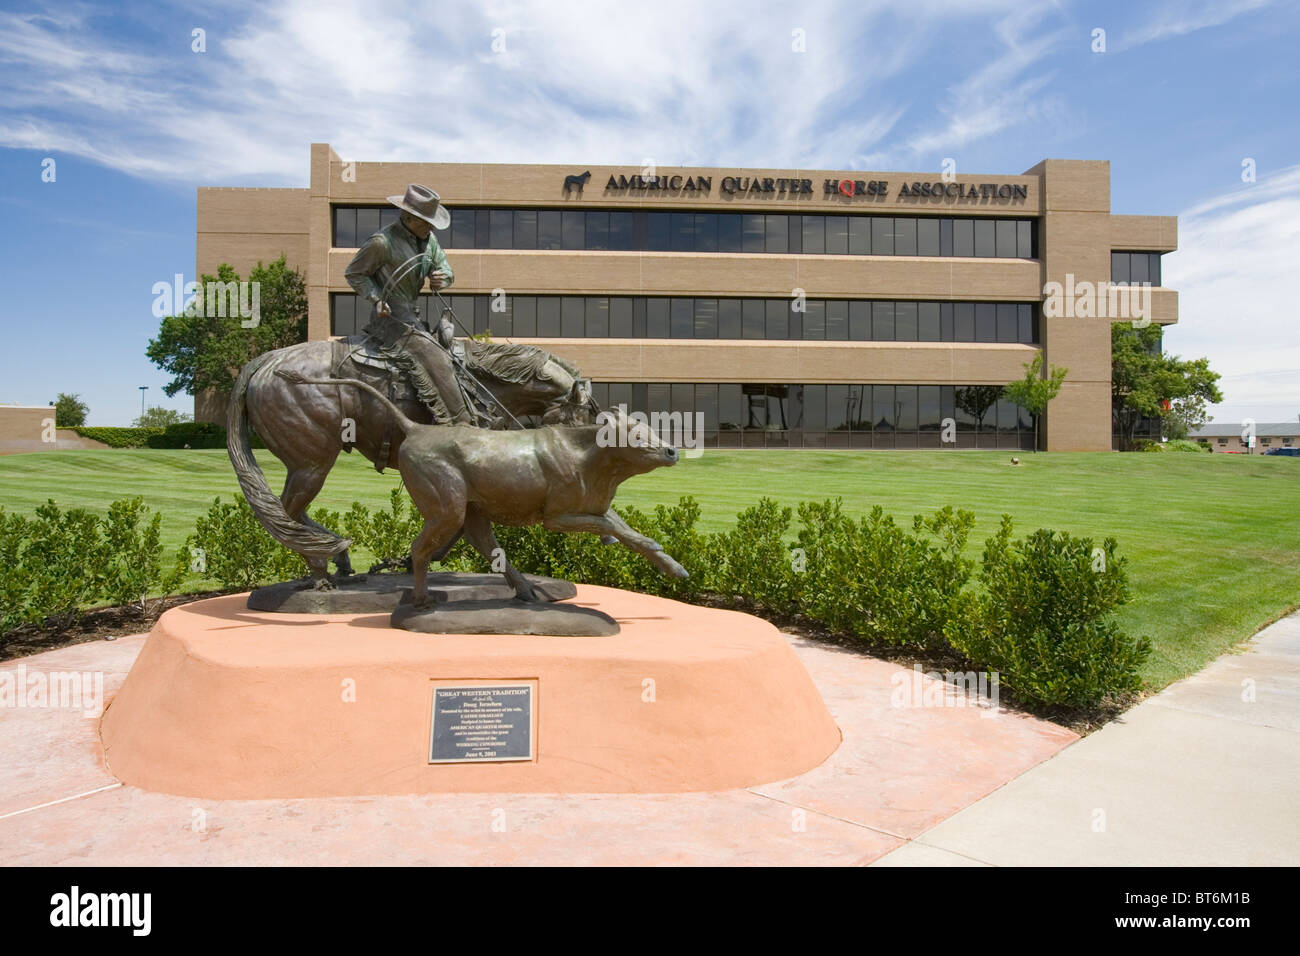 The newly renovated (2007) American Quarter Horse Hall of Fame & Museum in Amarillo, Texas. - Stock Image